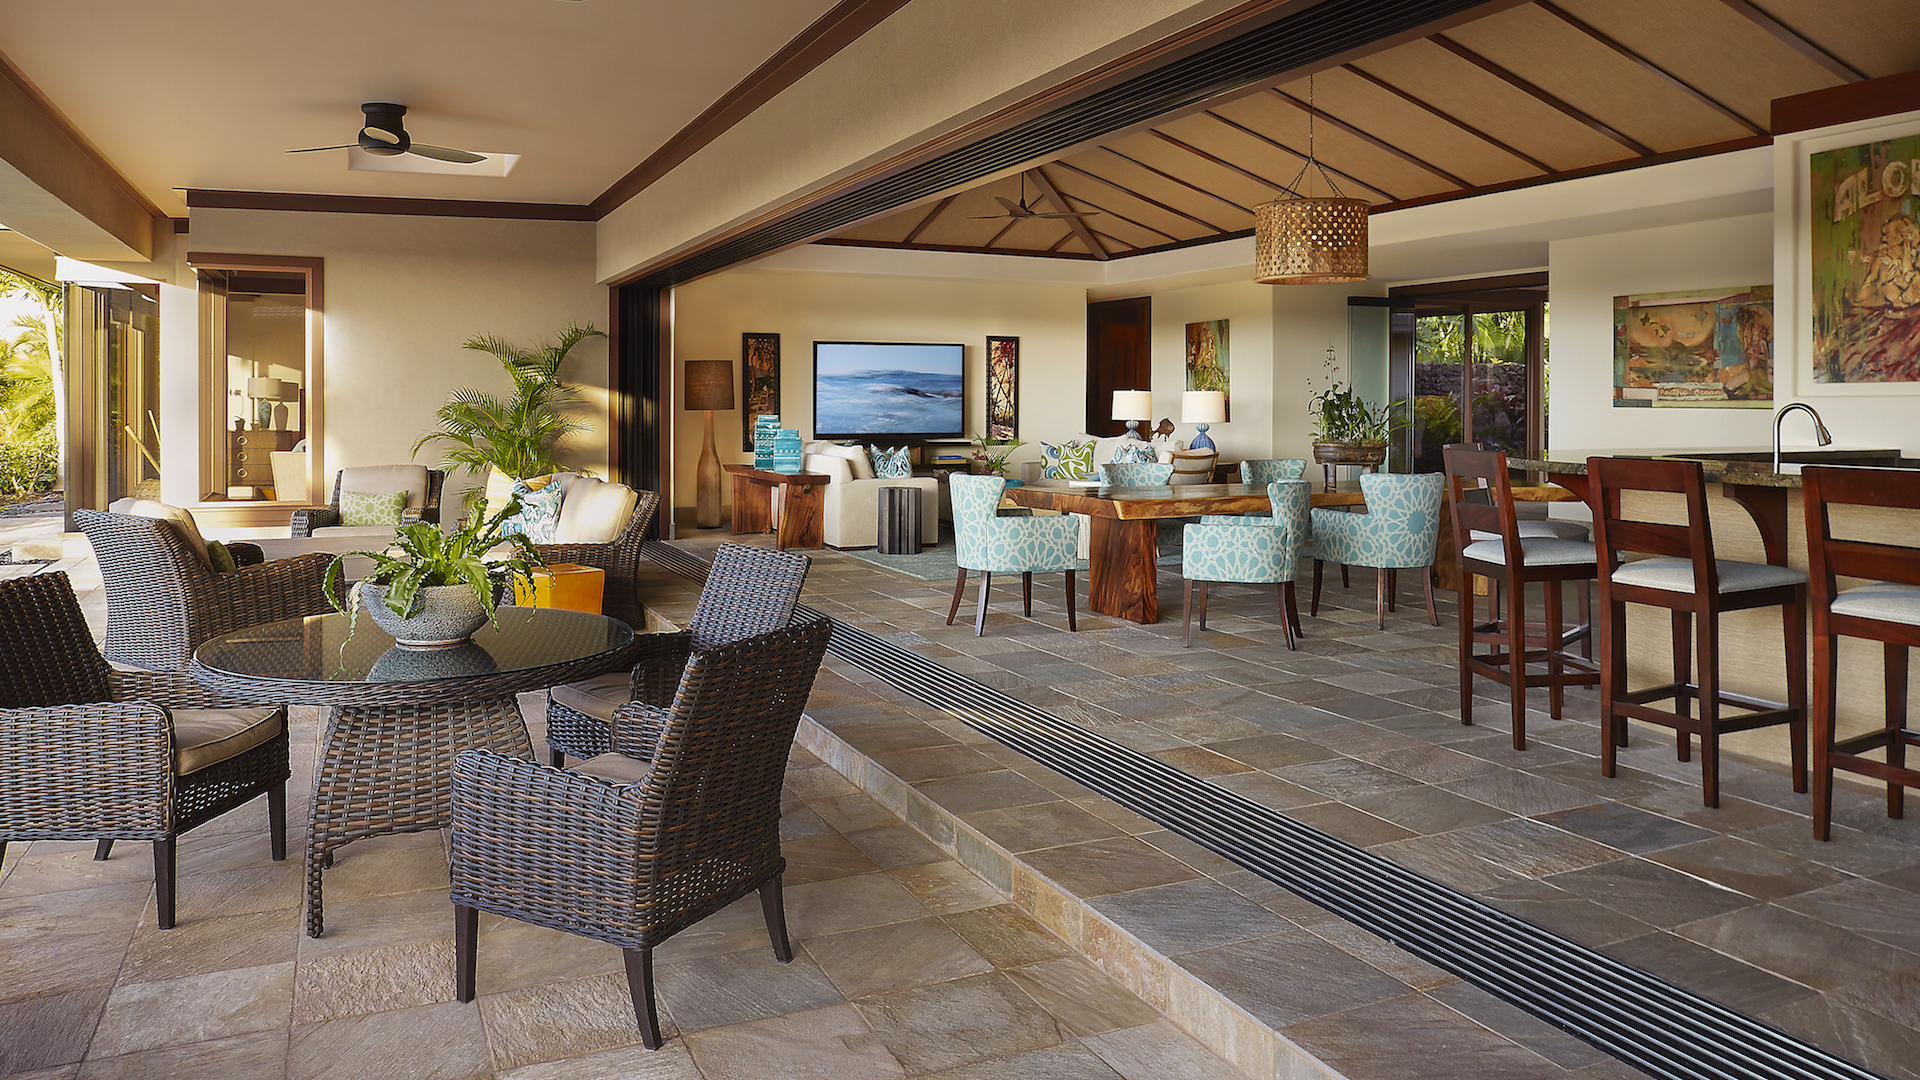 Alternate view of lanai with pocket doors, looking toward living room.